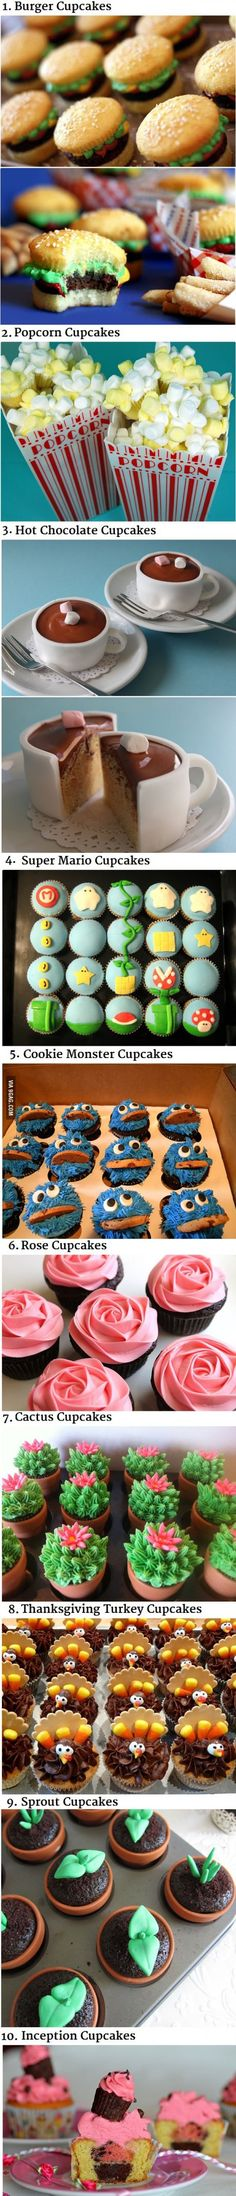 10 Awesome Cupcake Decorating Ideas